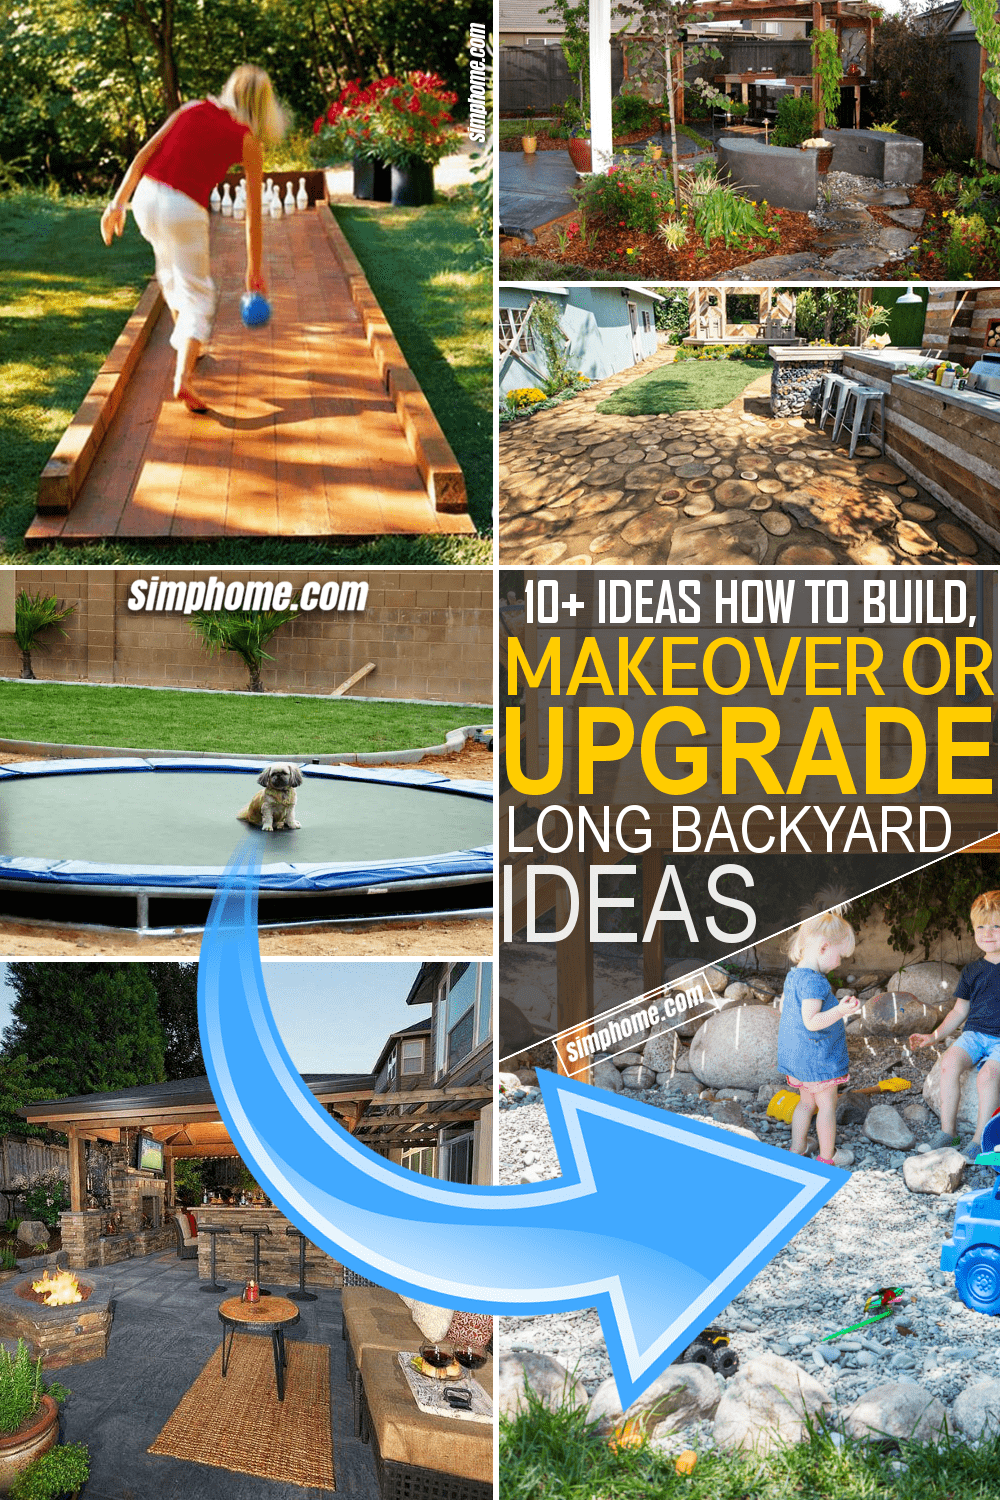 Simphome.com 10 Ideas How to Build and Makeover or Upgrade Long Backyard